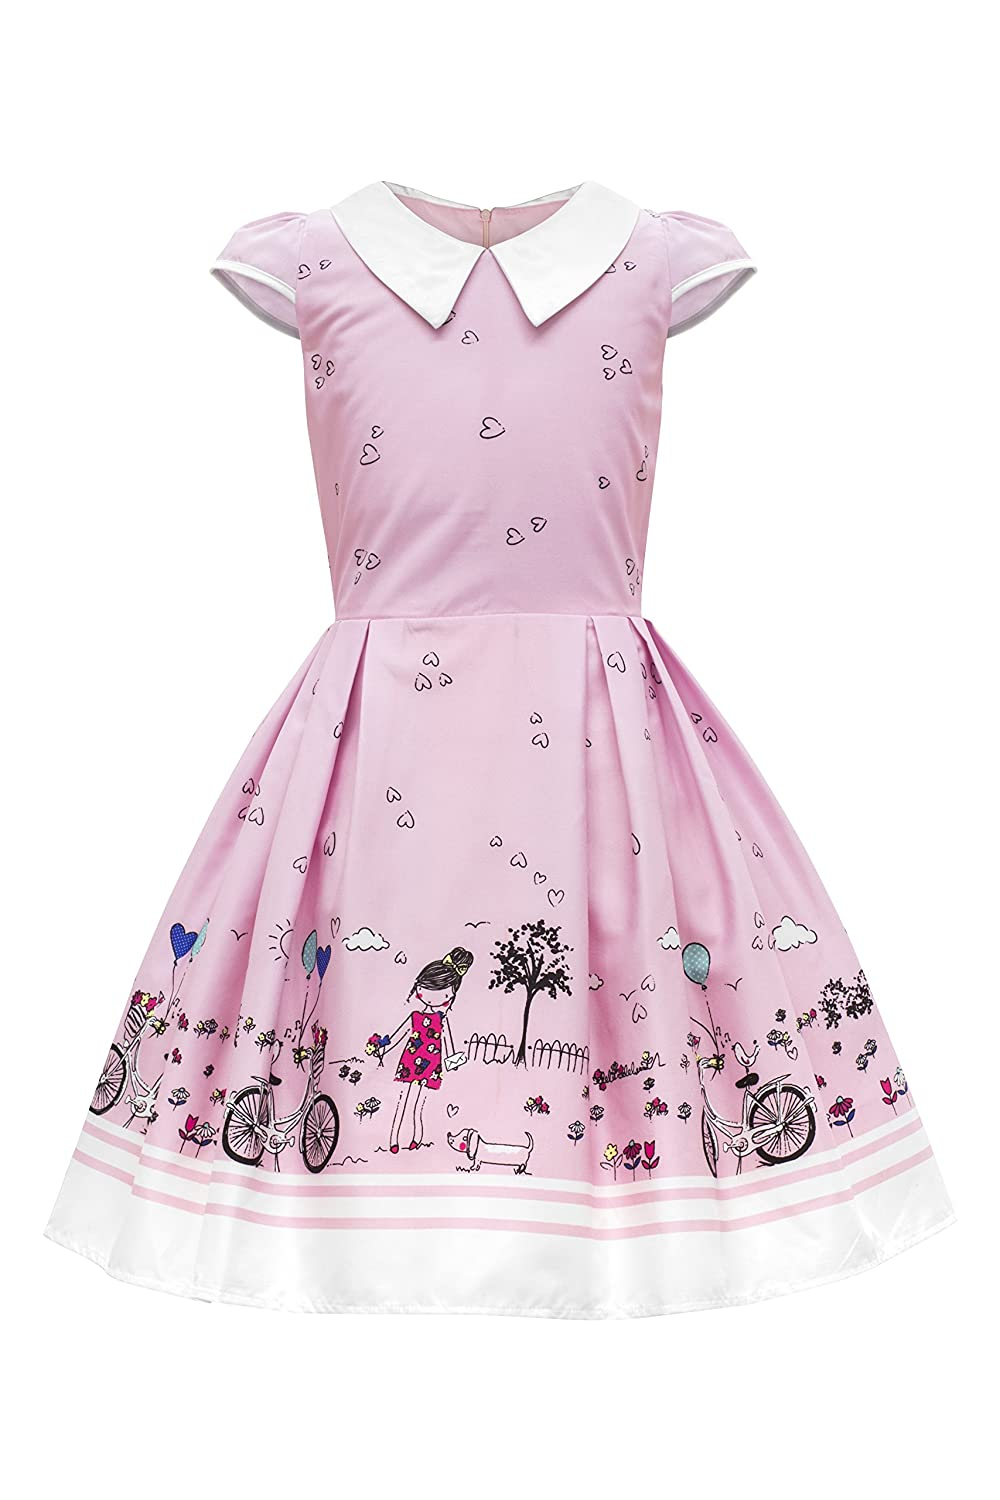 Vintage Style Children's Clothing: Girls, Boys, Baby, Toddler BlackButterfly Kids Olivia Vintage Sunshine 50s Childrens Girls Dress $26.99 AT vintagedancer.com